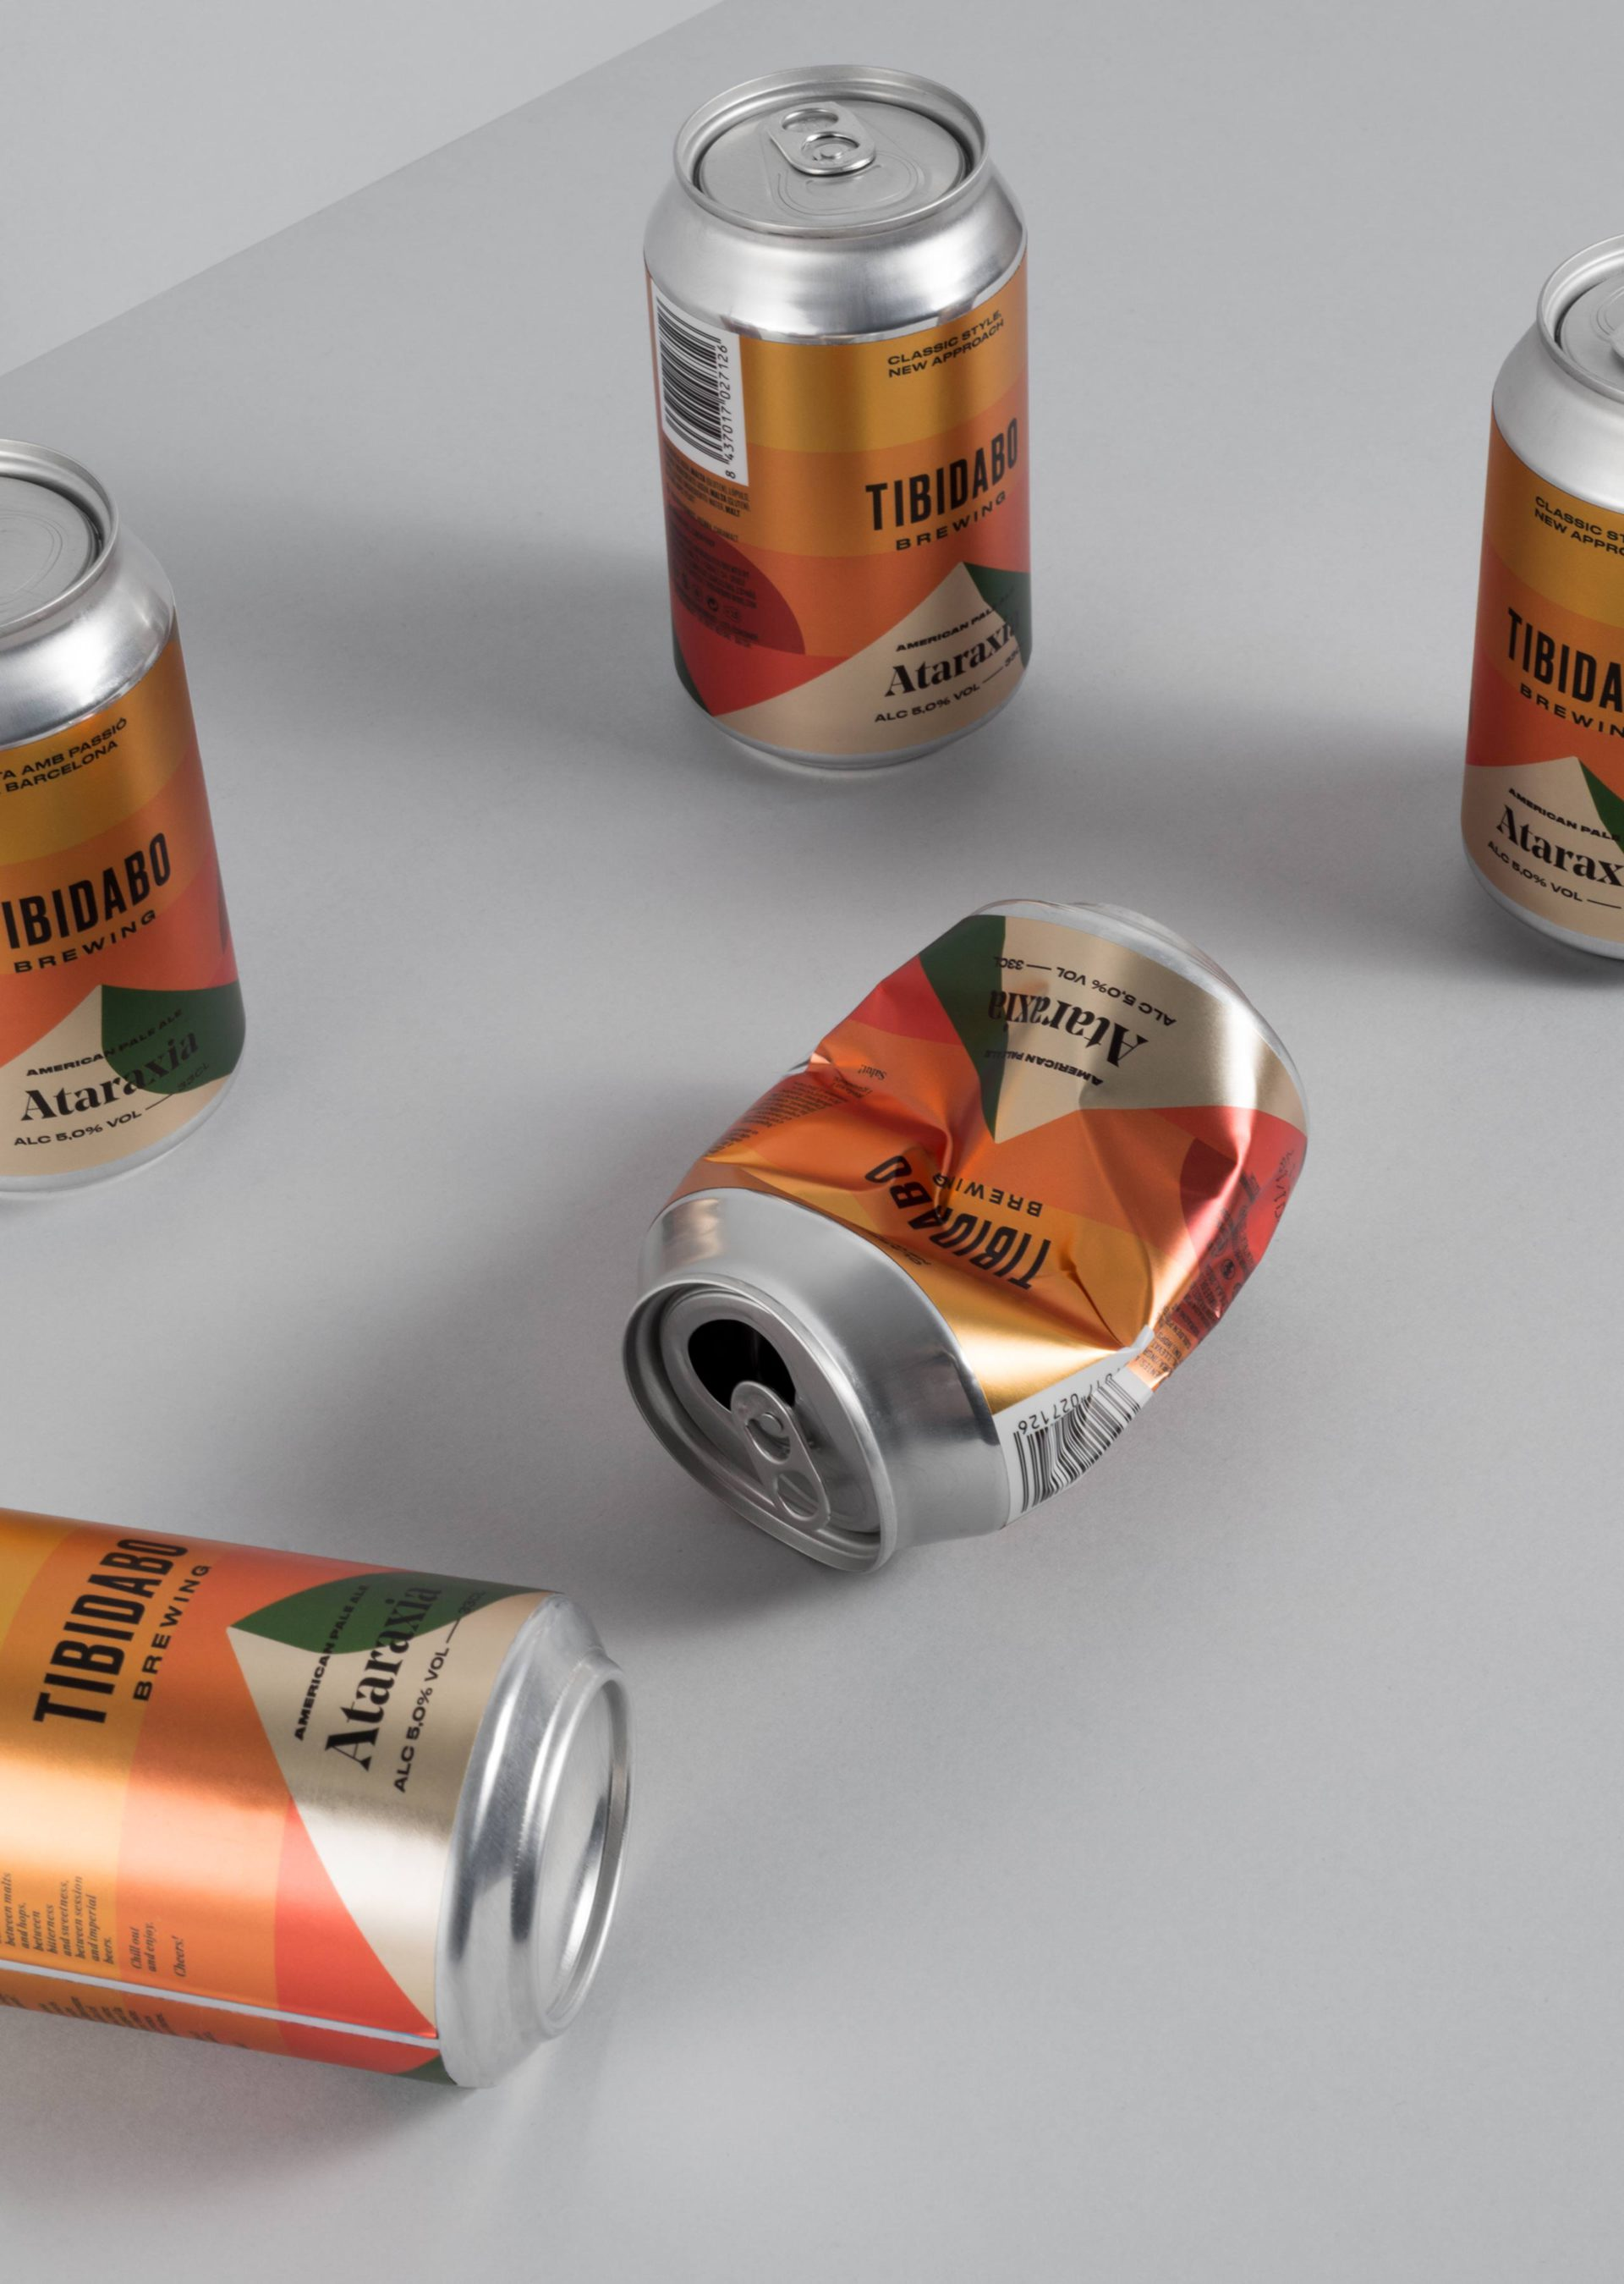 Creation of Fun, Premium and Distinctive Identity for a New Barcelona Beer Brand /World Brand & Packaging Design Society